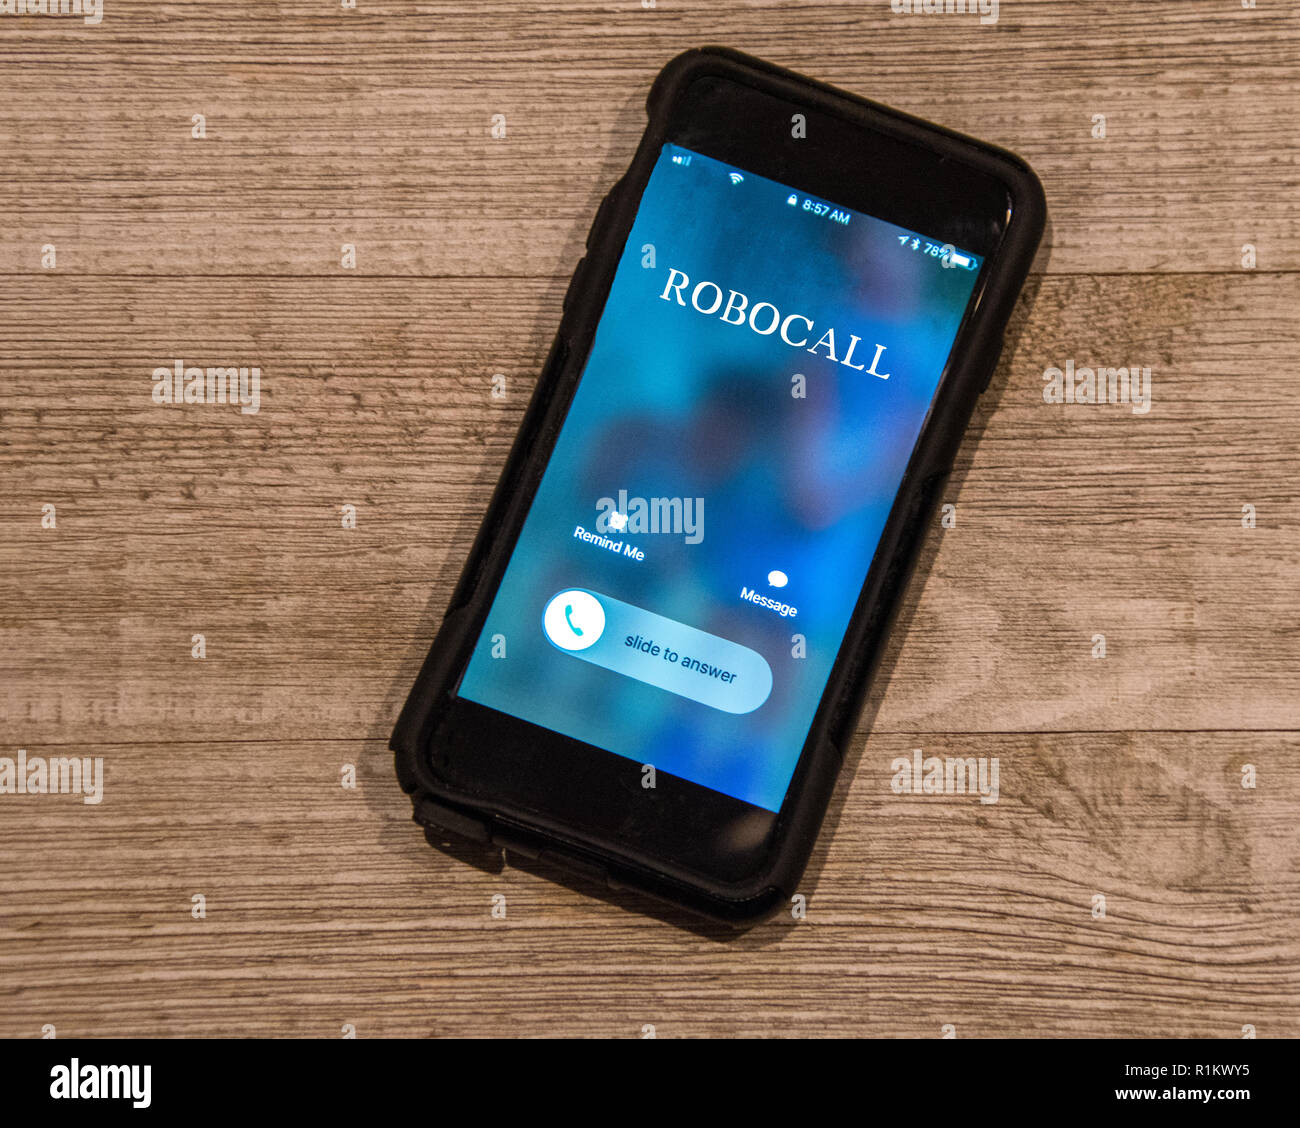 Cell Phone showing call from, Robocall - Stock Image